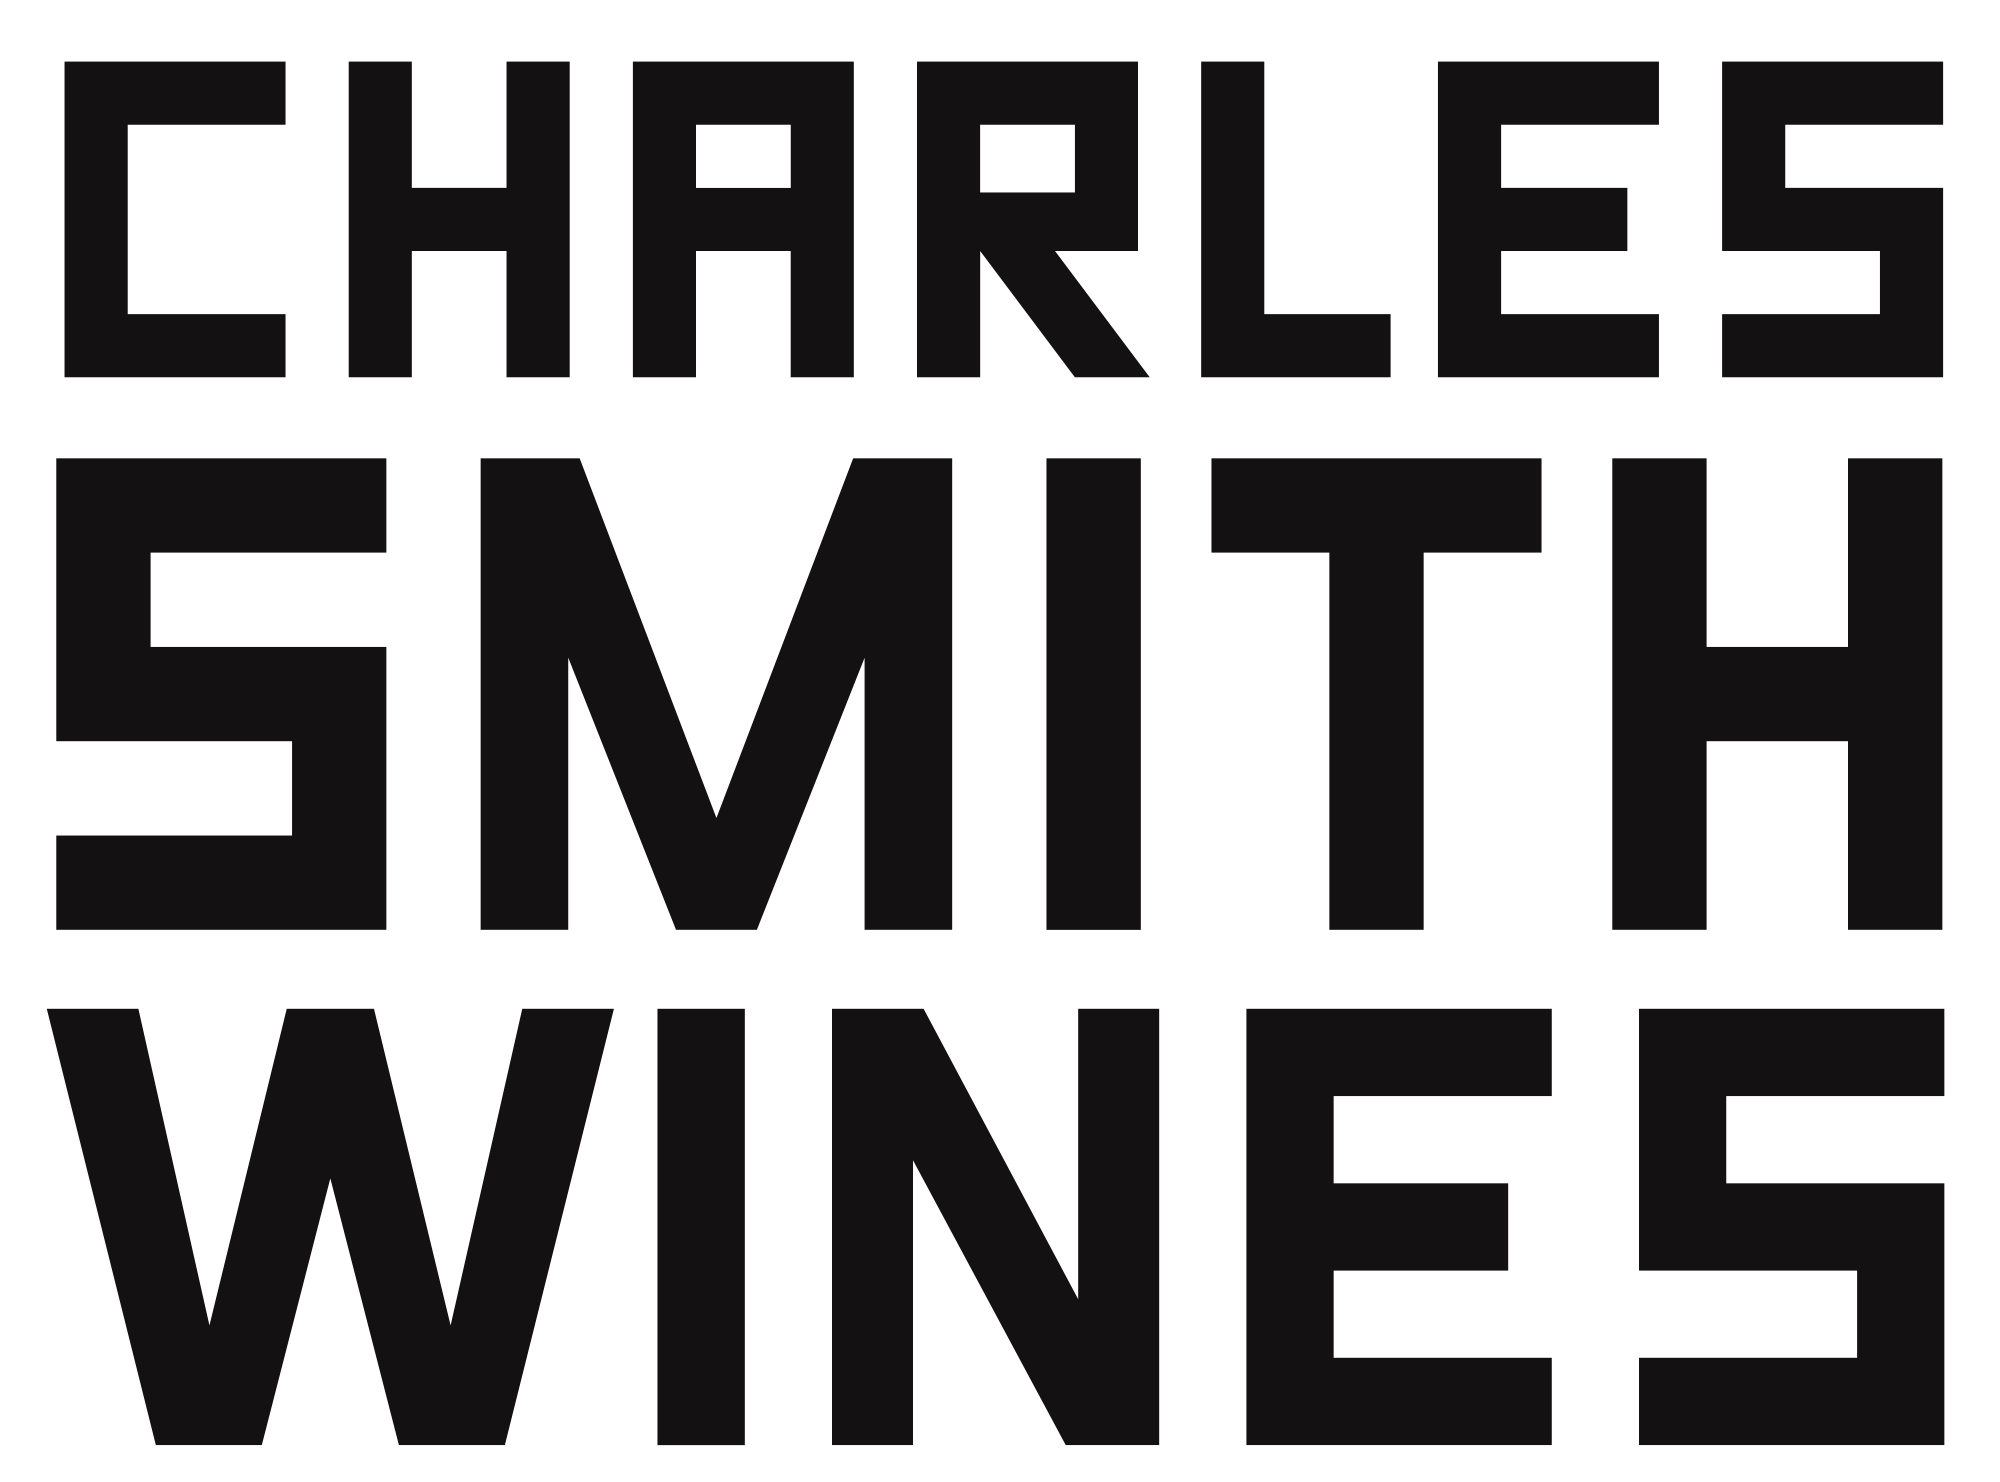 Charles_Smith_2018